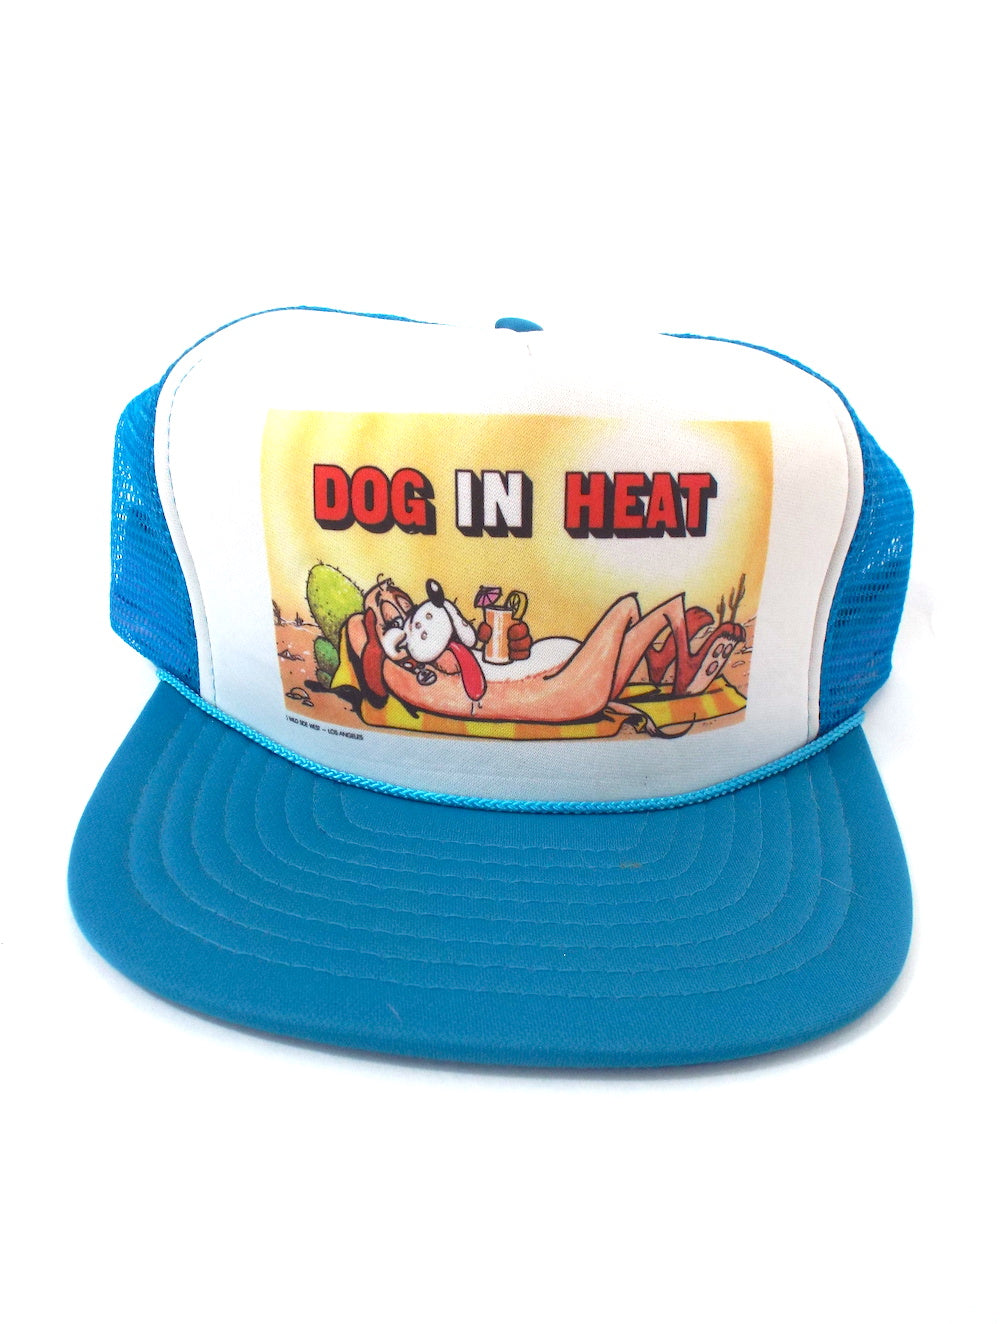 Vintage 80s Dog in Heat Funny Snapback Trucker Hat